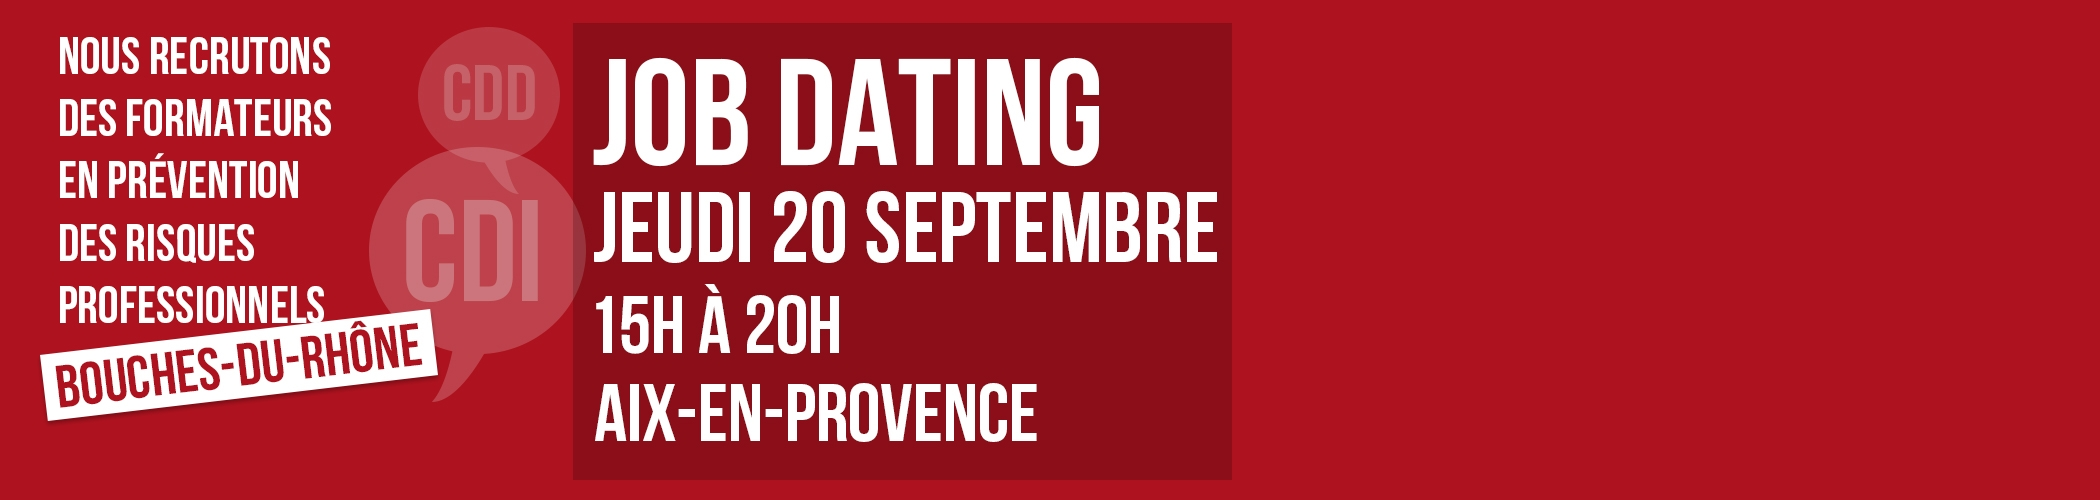 Job Dating Formateur le 20 septembre 2018 à Aix-en-Provence